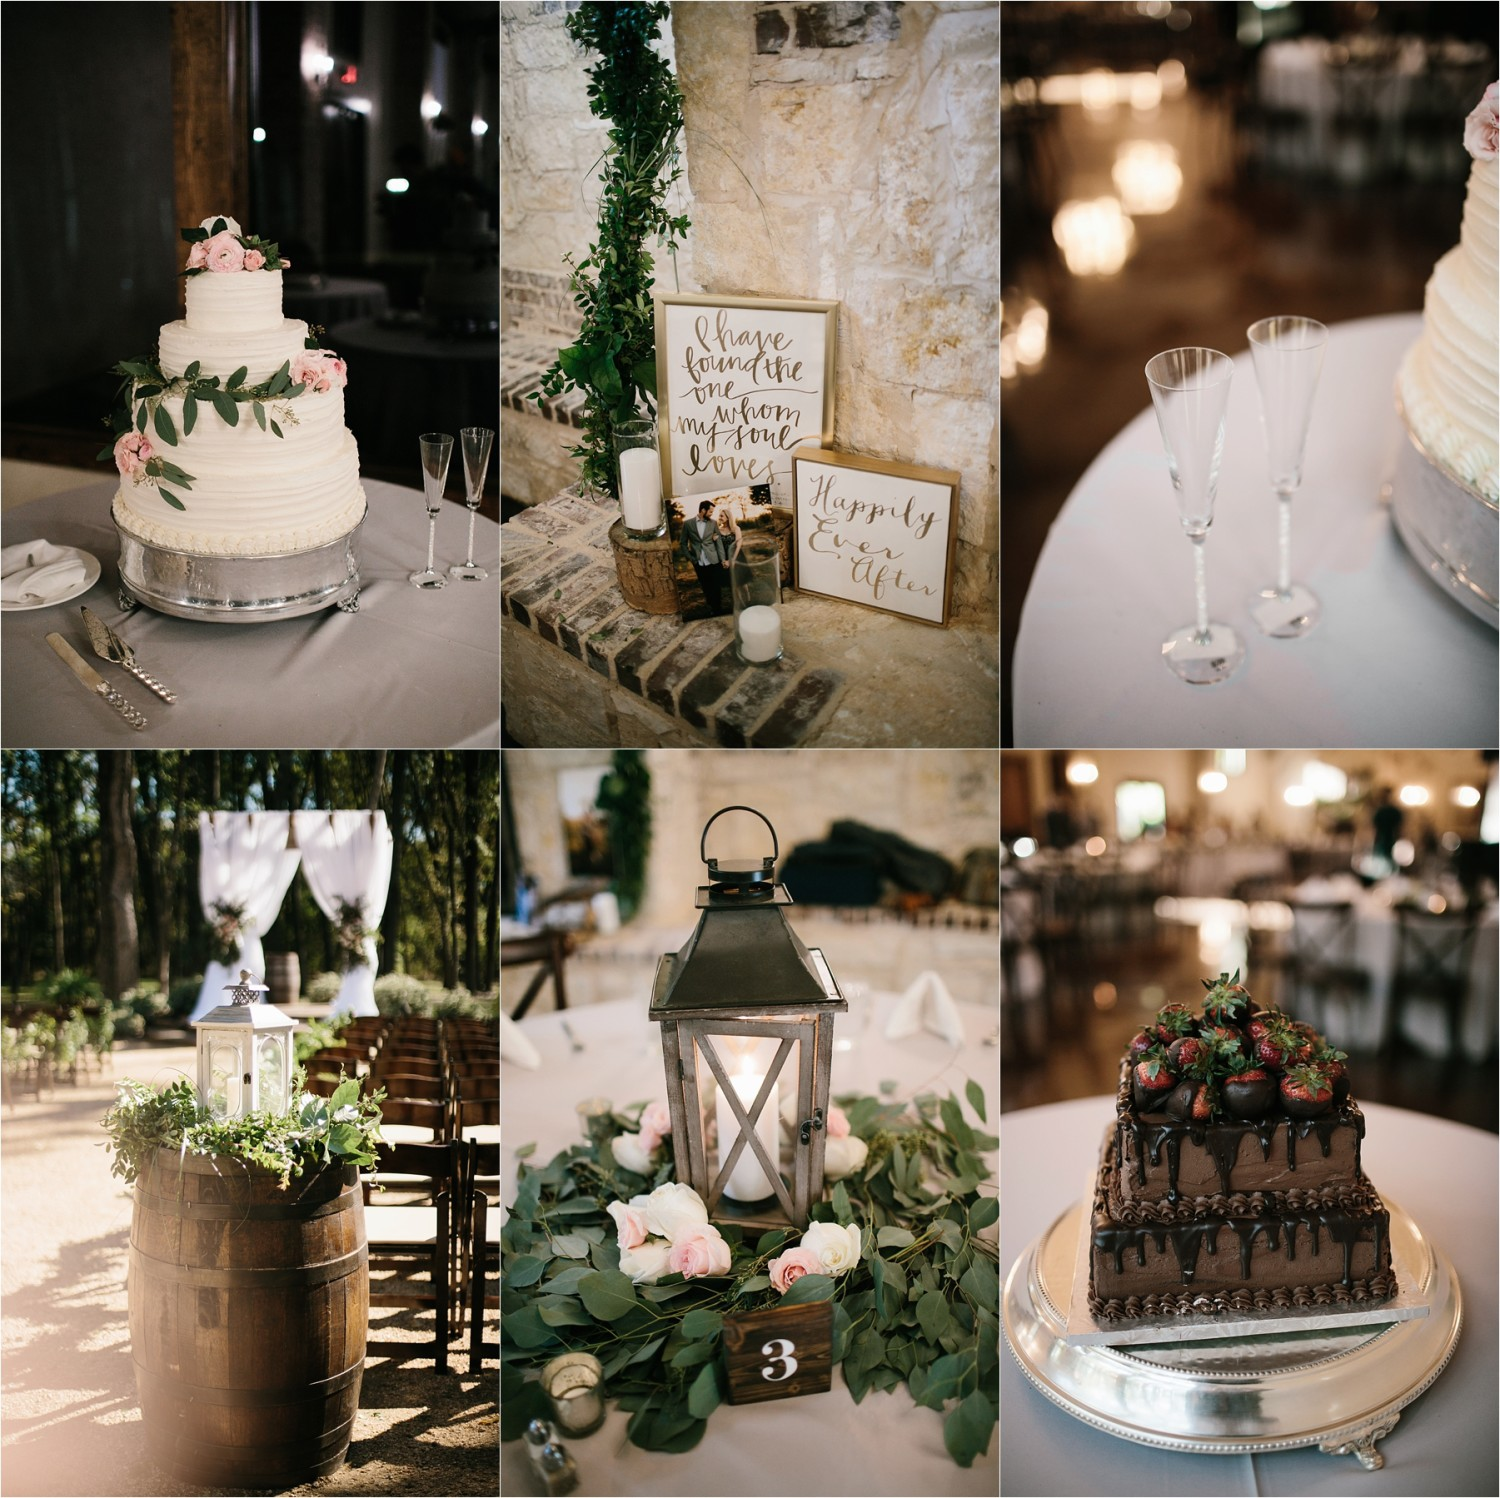 brad-lara-__-a-grey-and-blush-pink-intimate-wedding-at-hidden-waters-event-center-in-waxahachie-tx-by-north-texas-wedding-photographer-rachel-meagan-photography-_-083